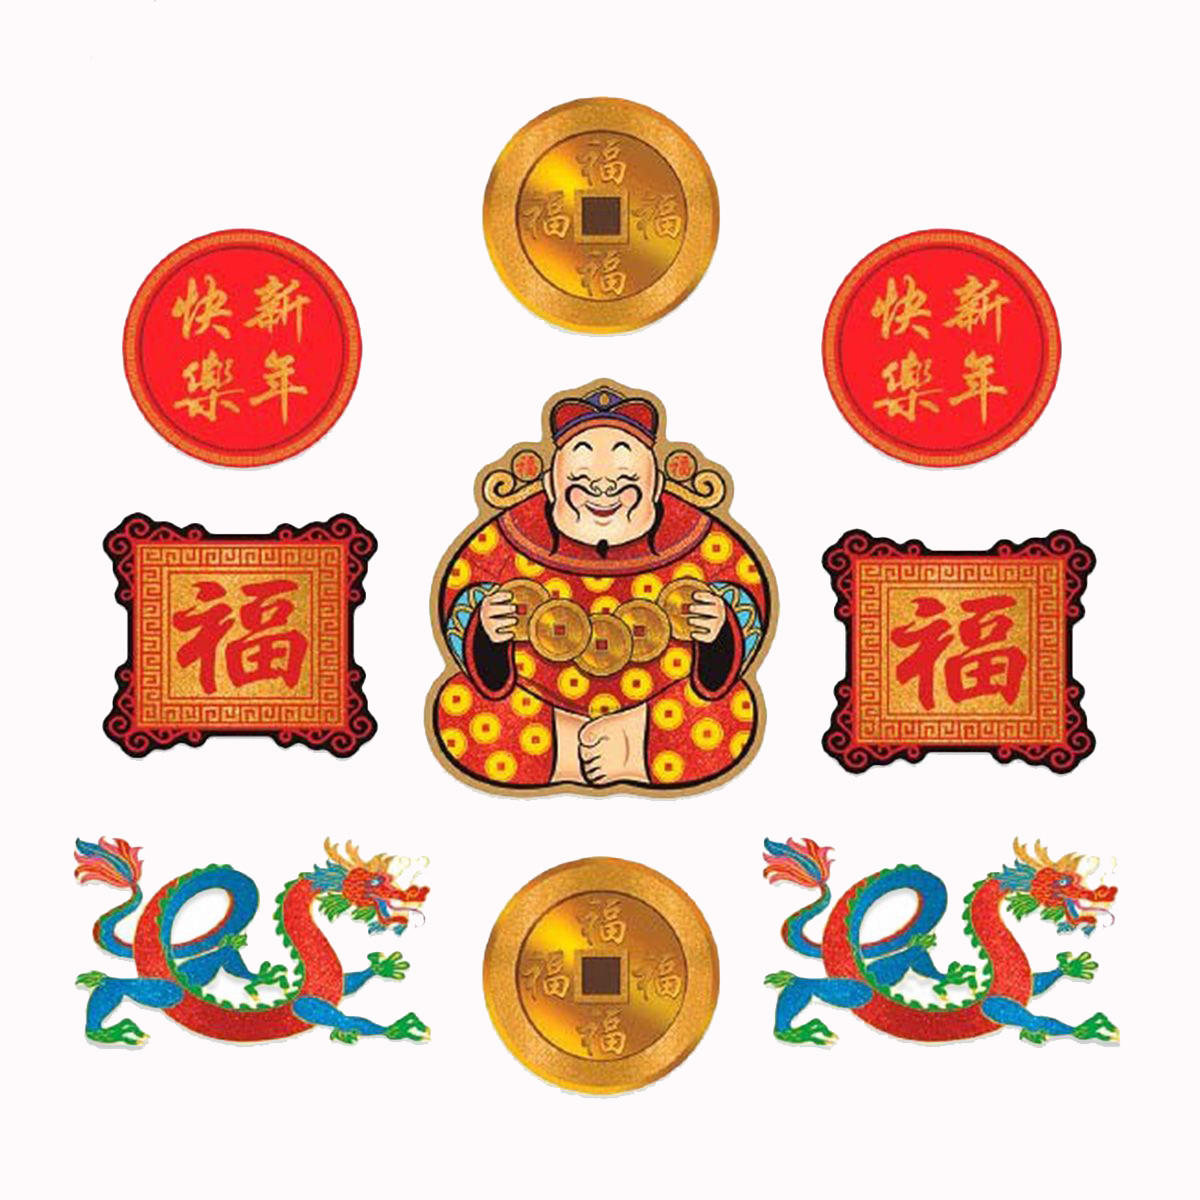 CHINESE NEW YEAR CUT OUTS - PACK OF 9